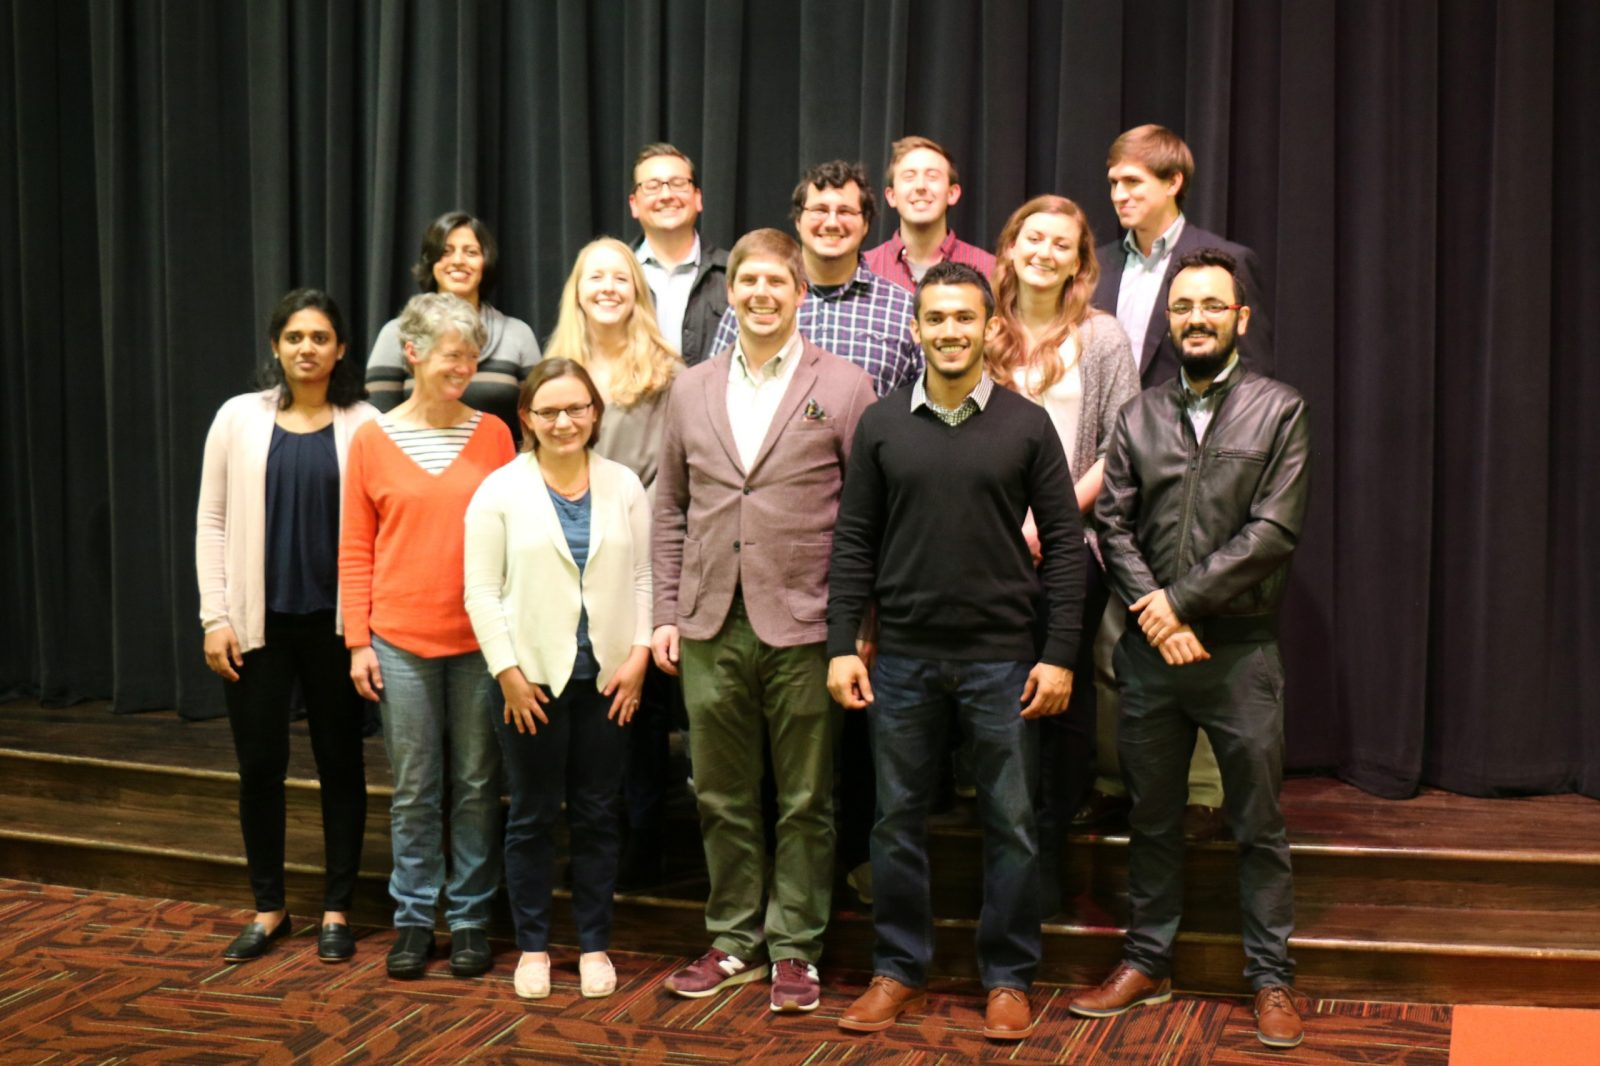 This photo shows 13 people posed for a group photo with a black stage curtain behind them. All are smiling. The group is made up of males and females and is of mixed ethnicities or nationalities.